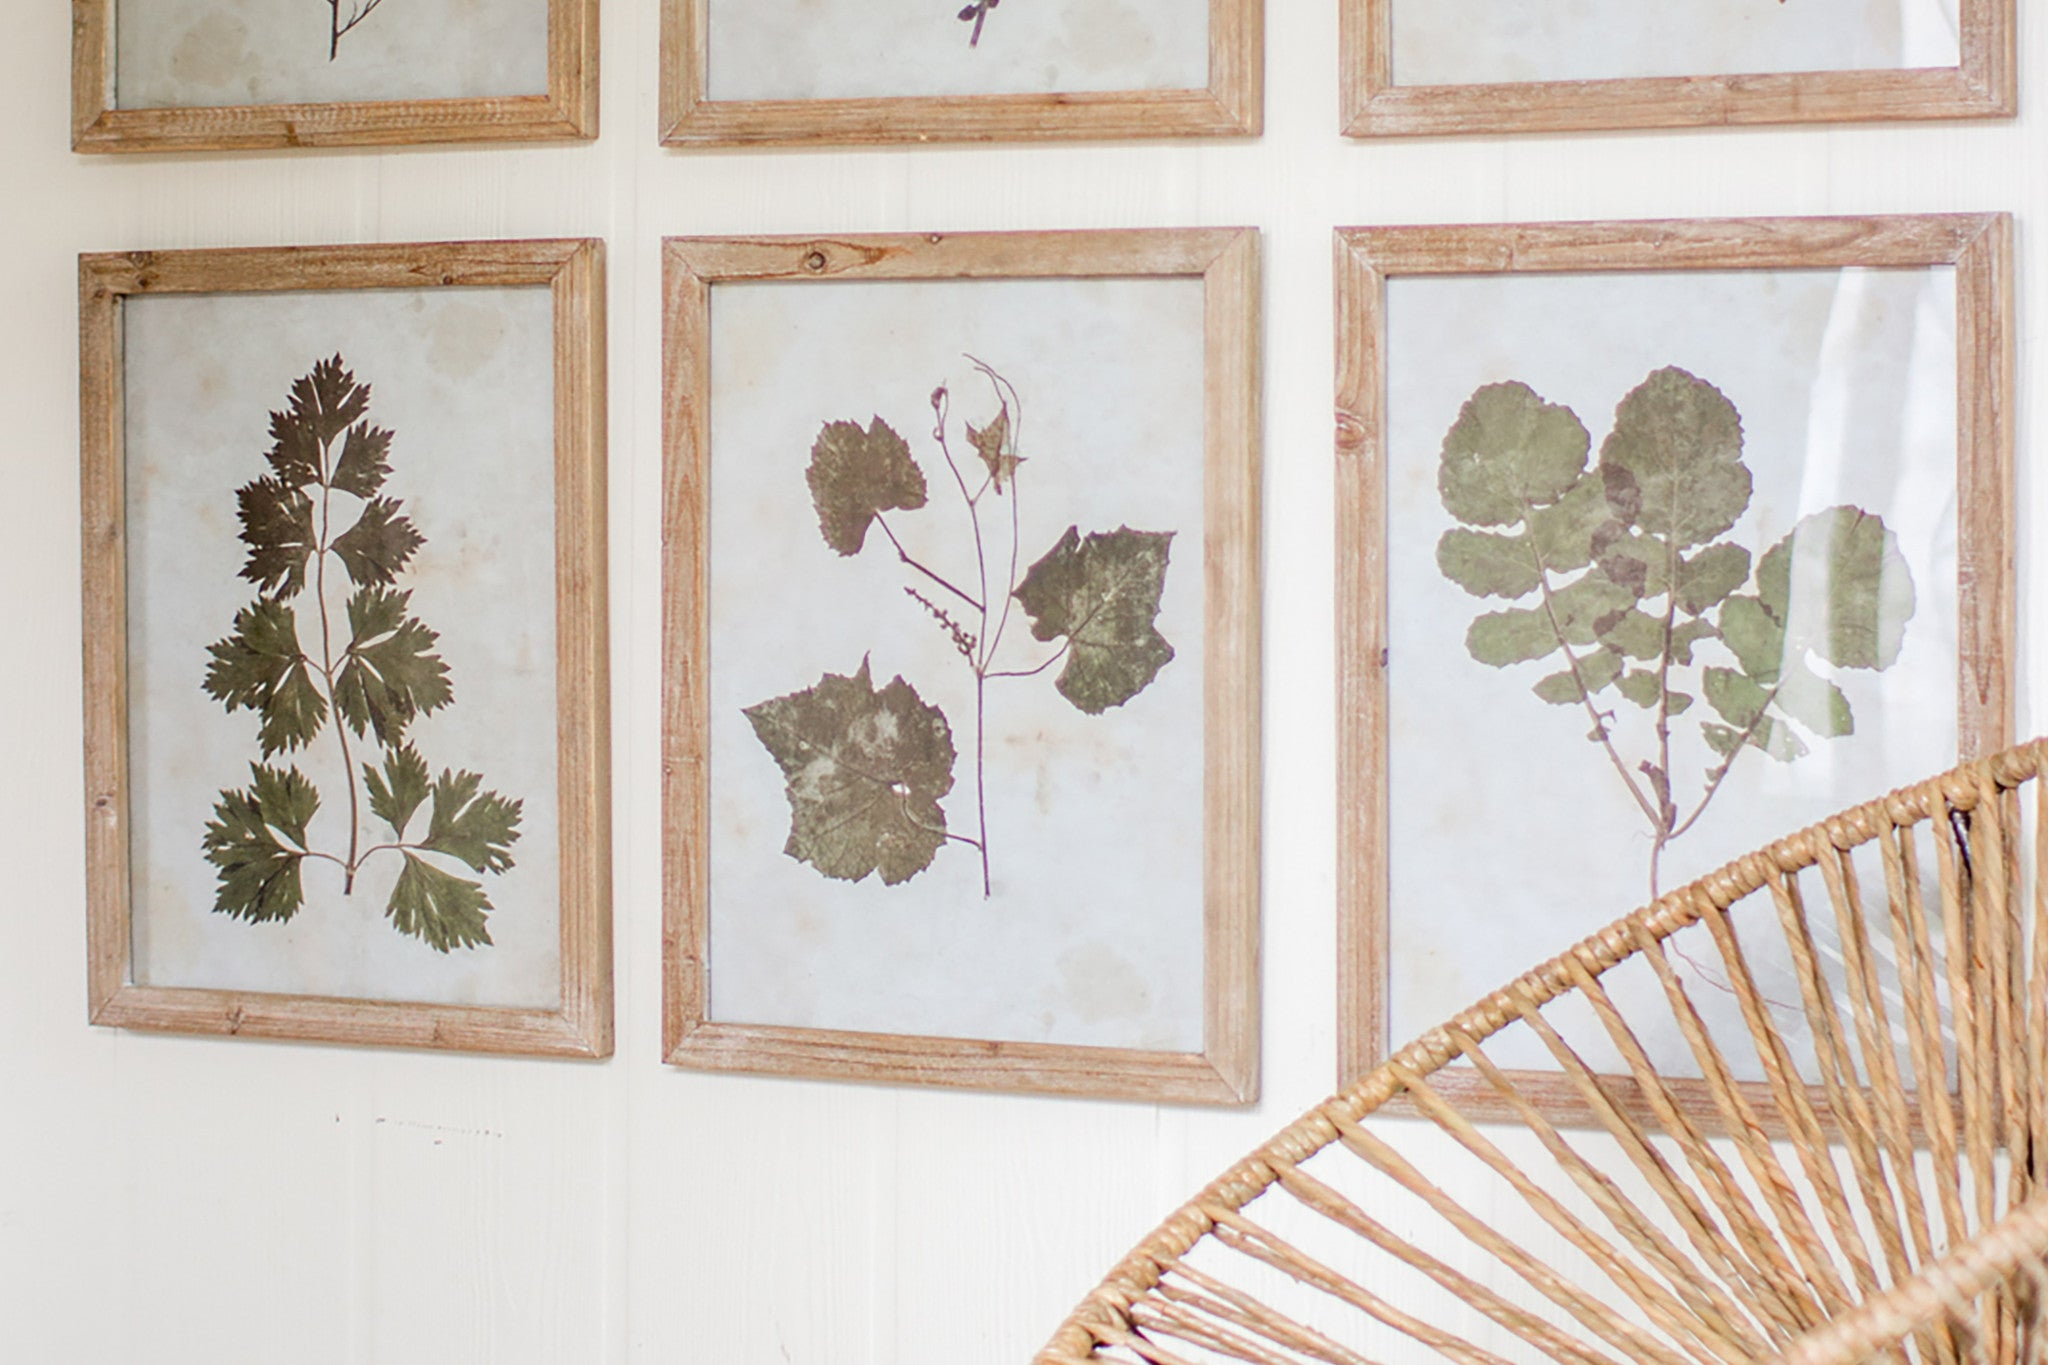 Botanic Leaf Prints With Rustic Wood Frames - Set of 6